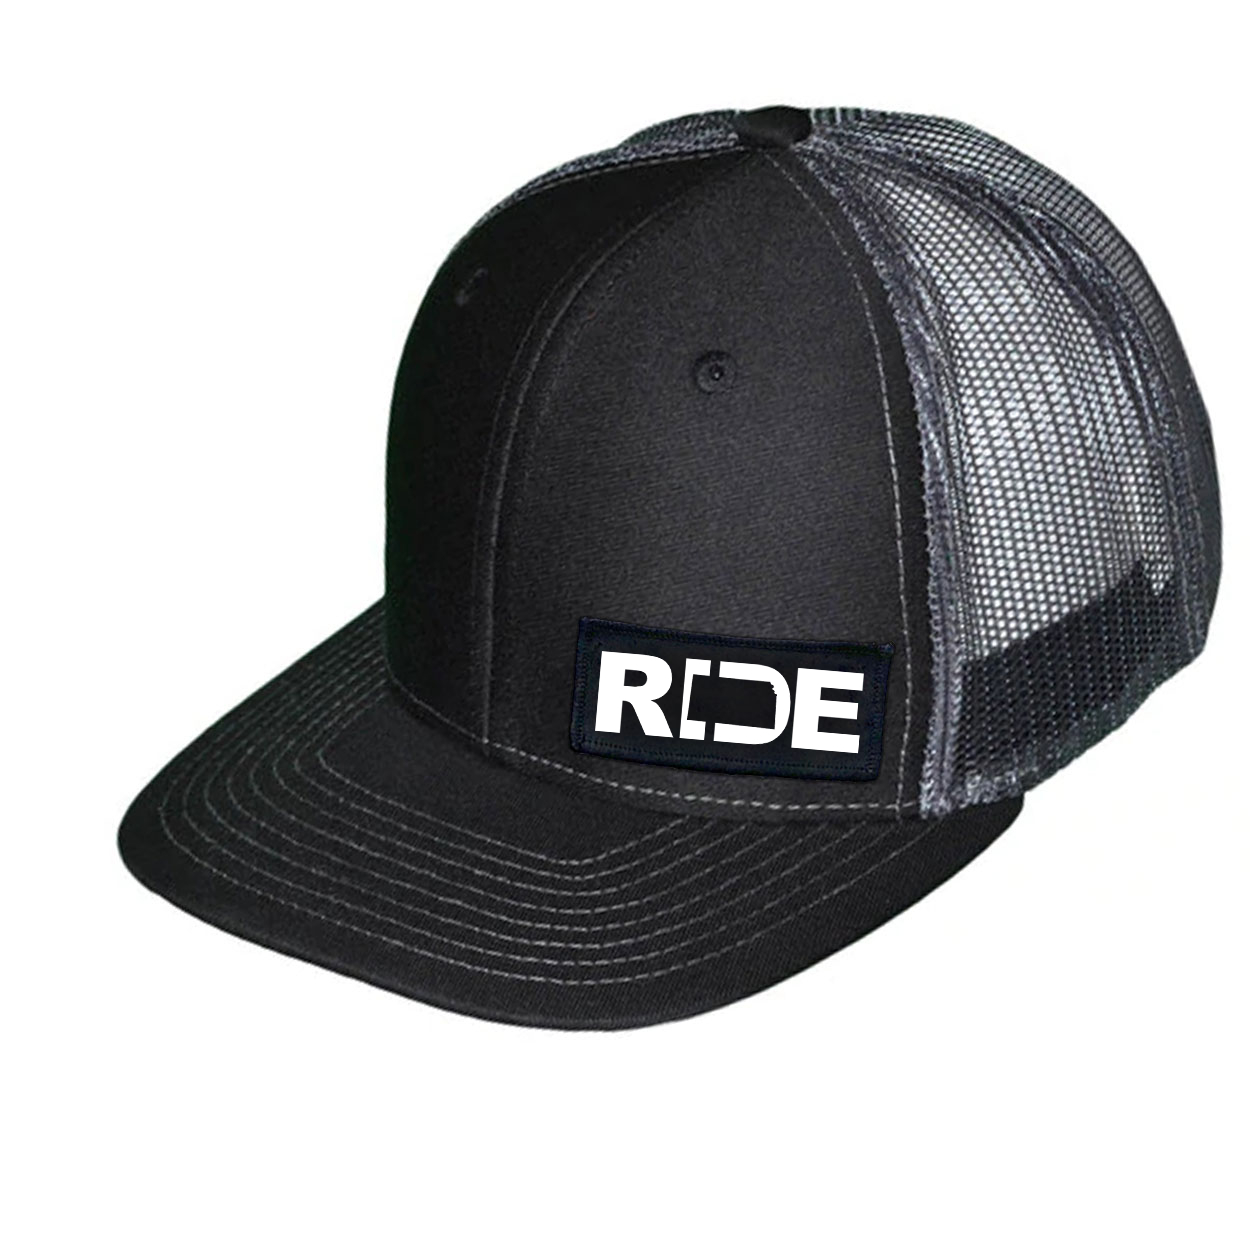 Ride Kansas Night Out Woven Patch Snapback Trucker Hat Black/Dark Gray (White Logo)